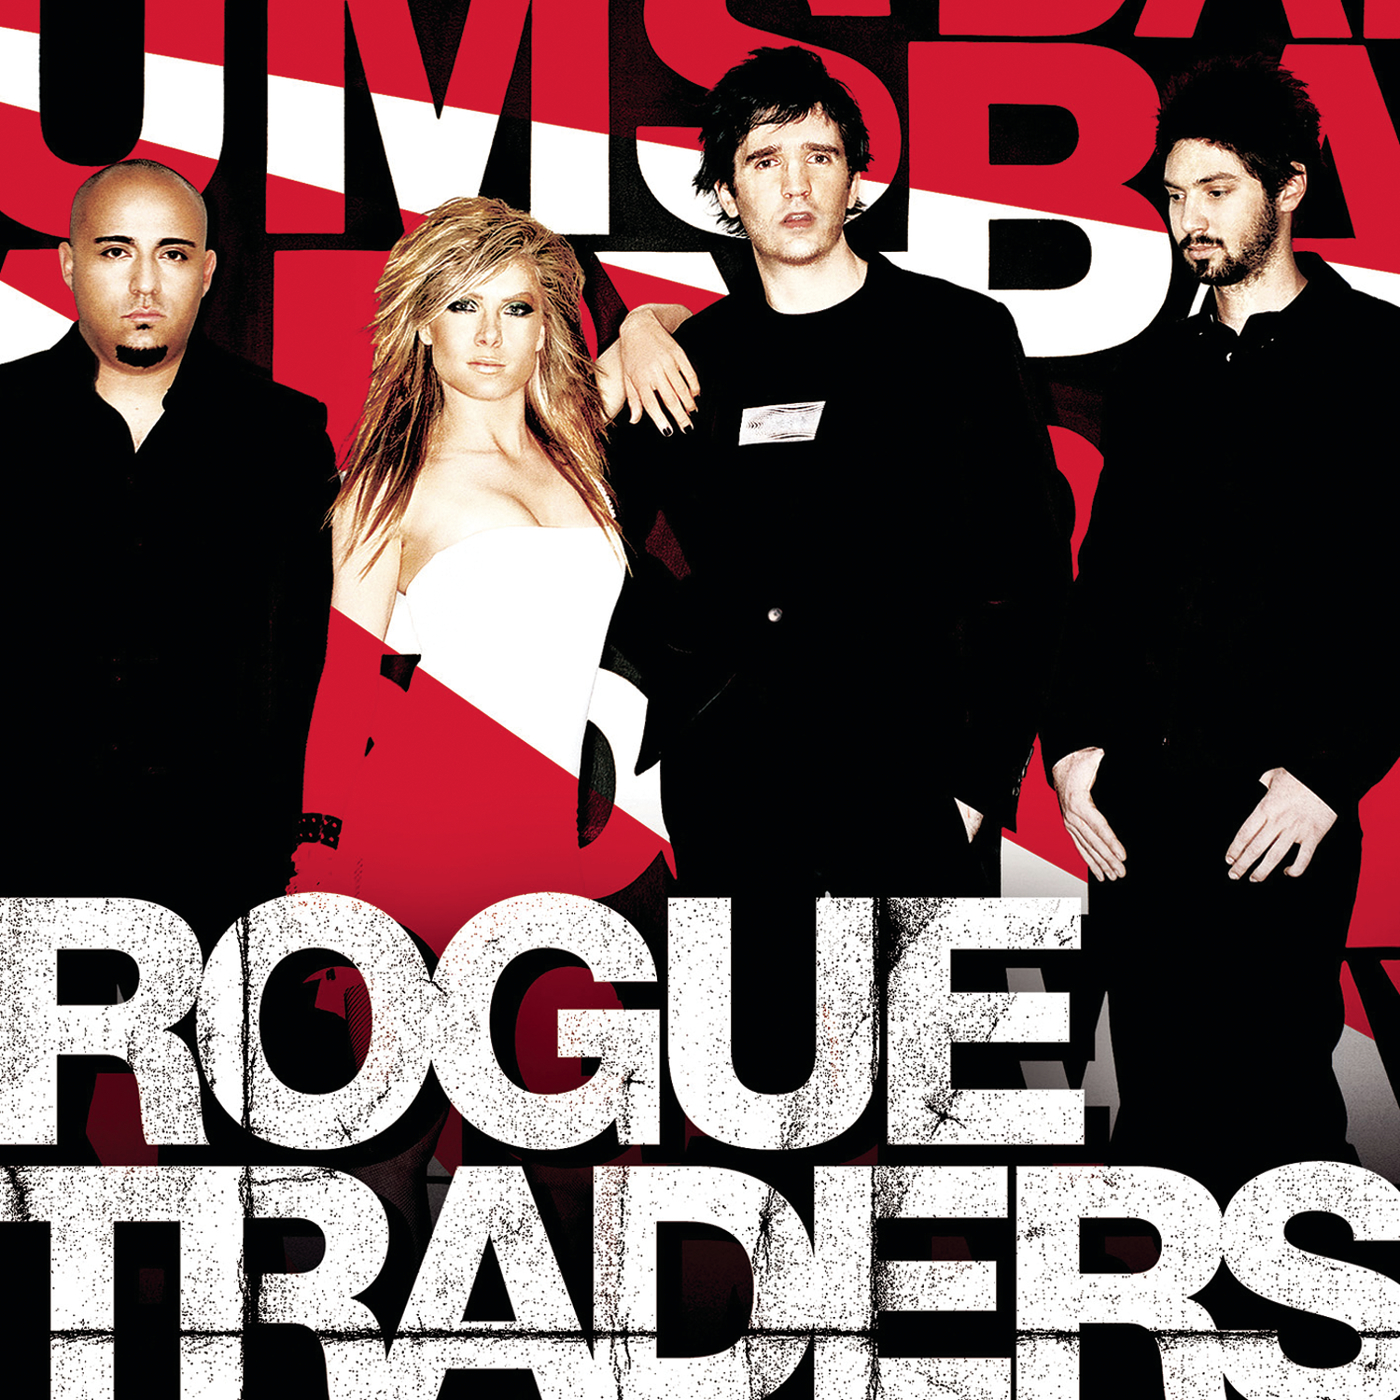 Here Come The Drums - Rogue Traders